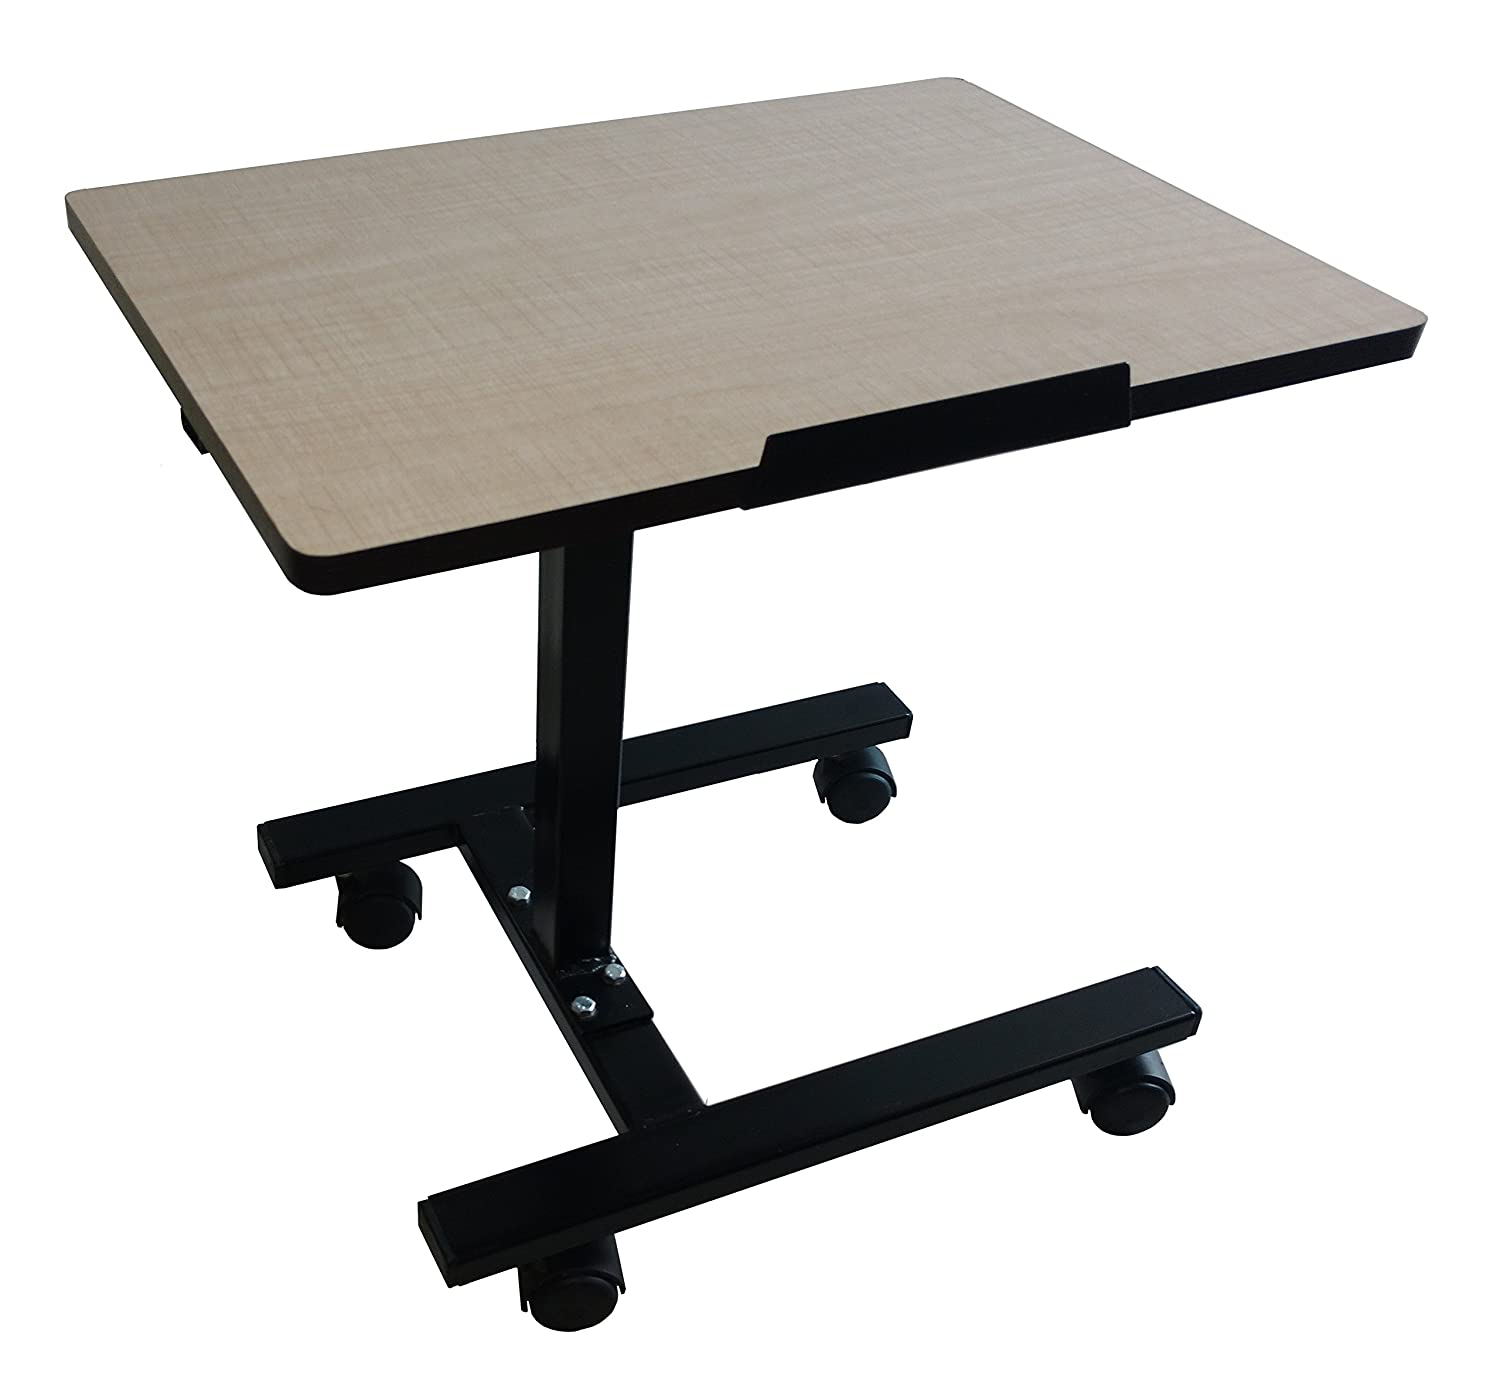 holder stand ktaxon wood desks table lap bamboo desk c kp portable read tray computer folding bed laptop